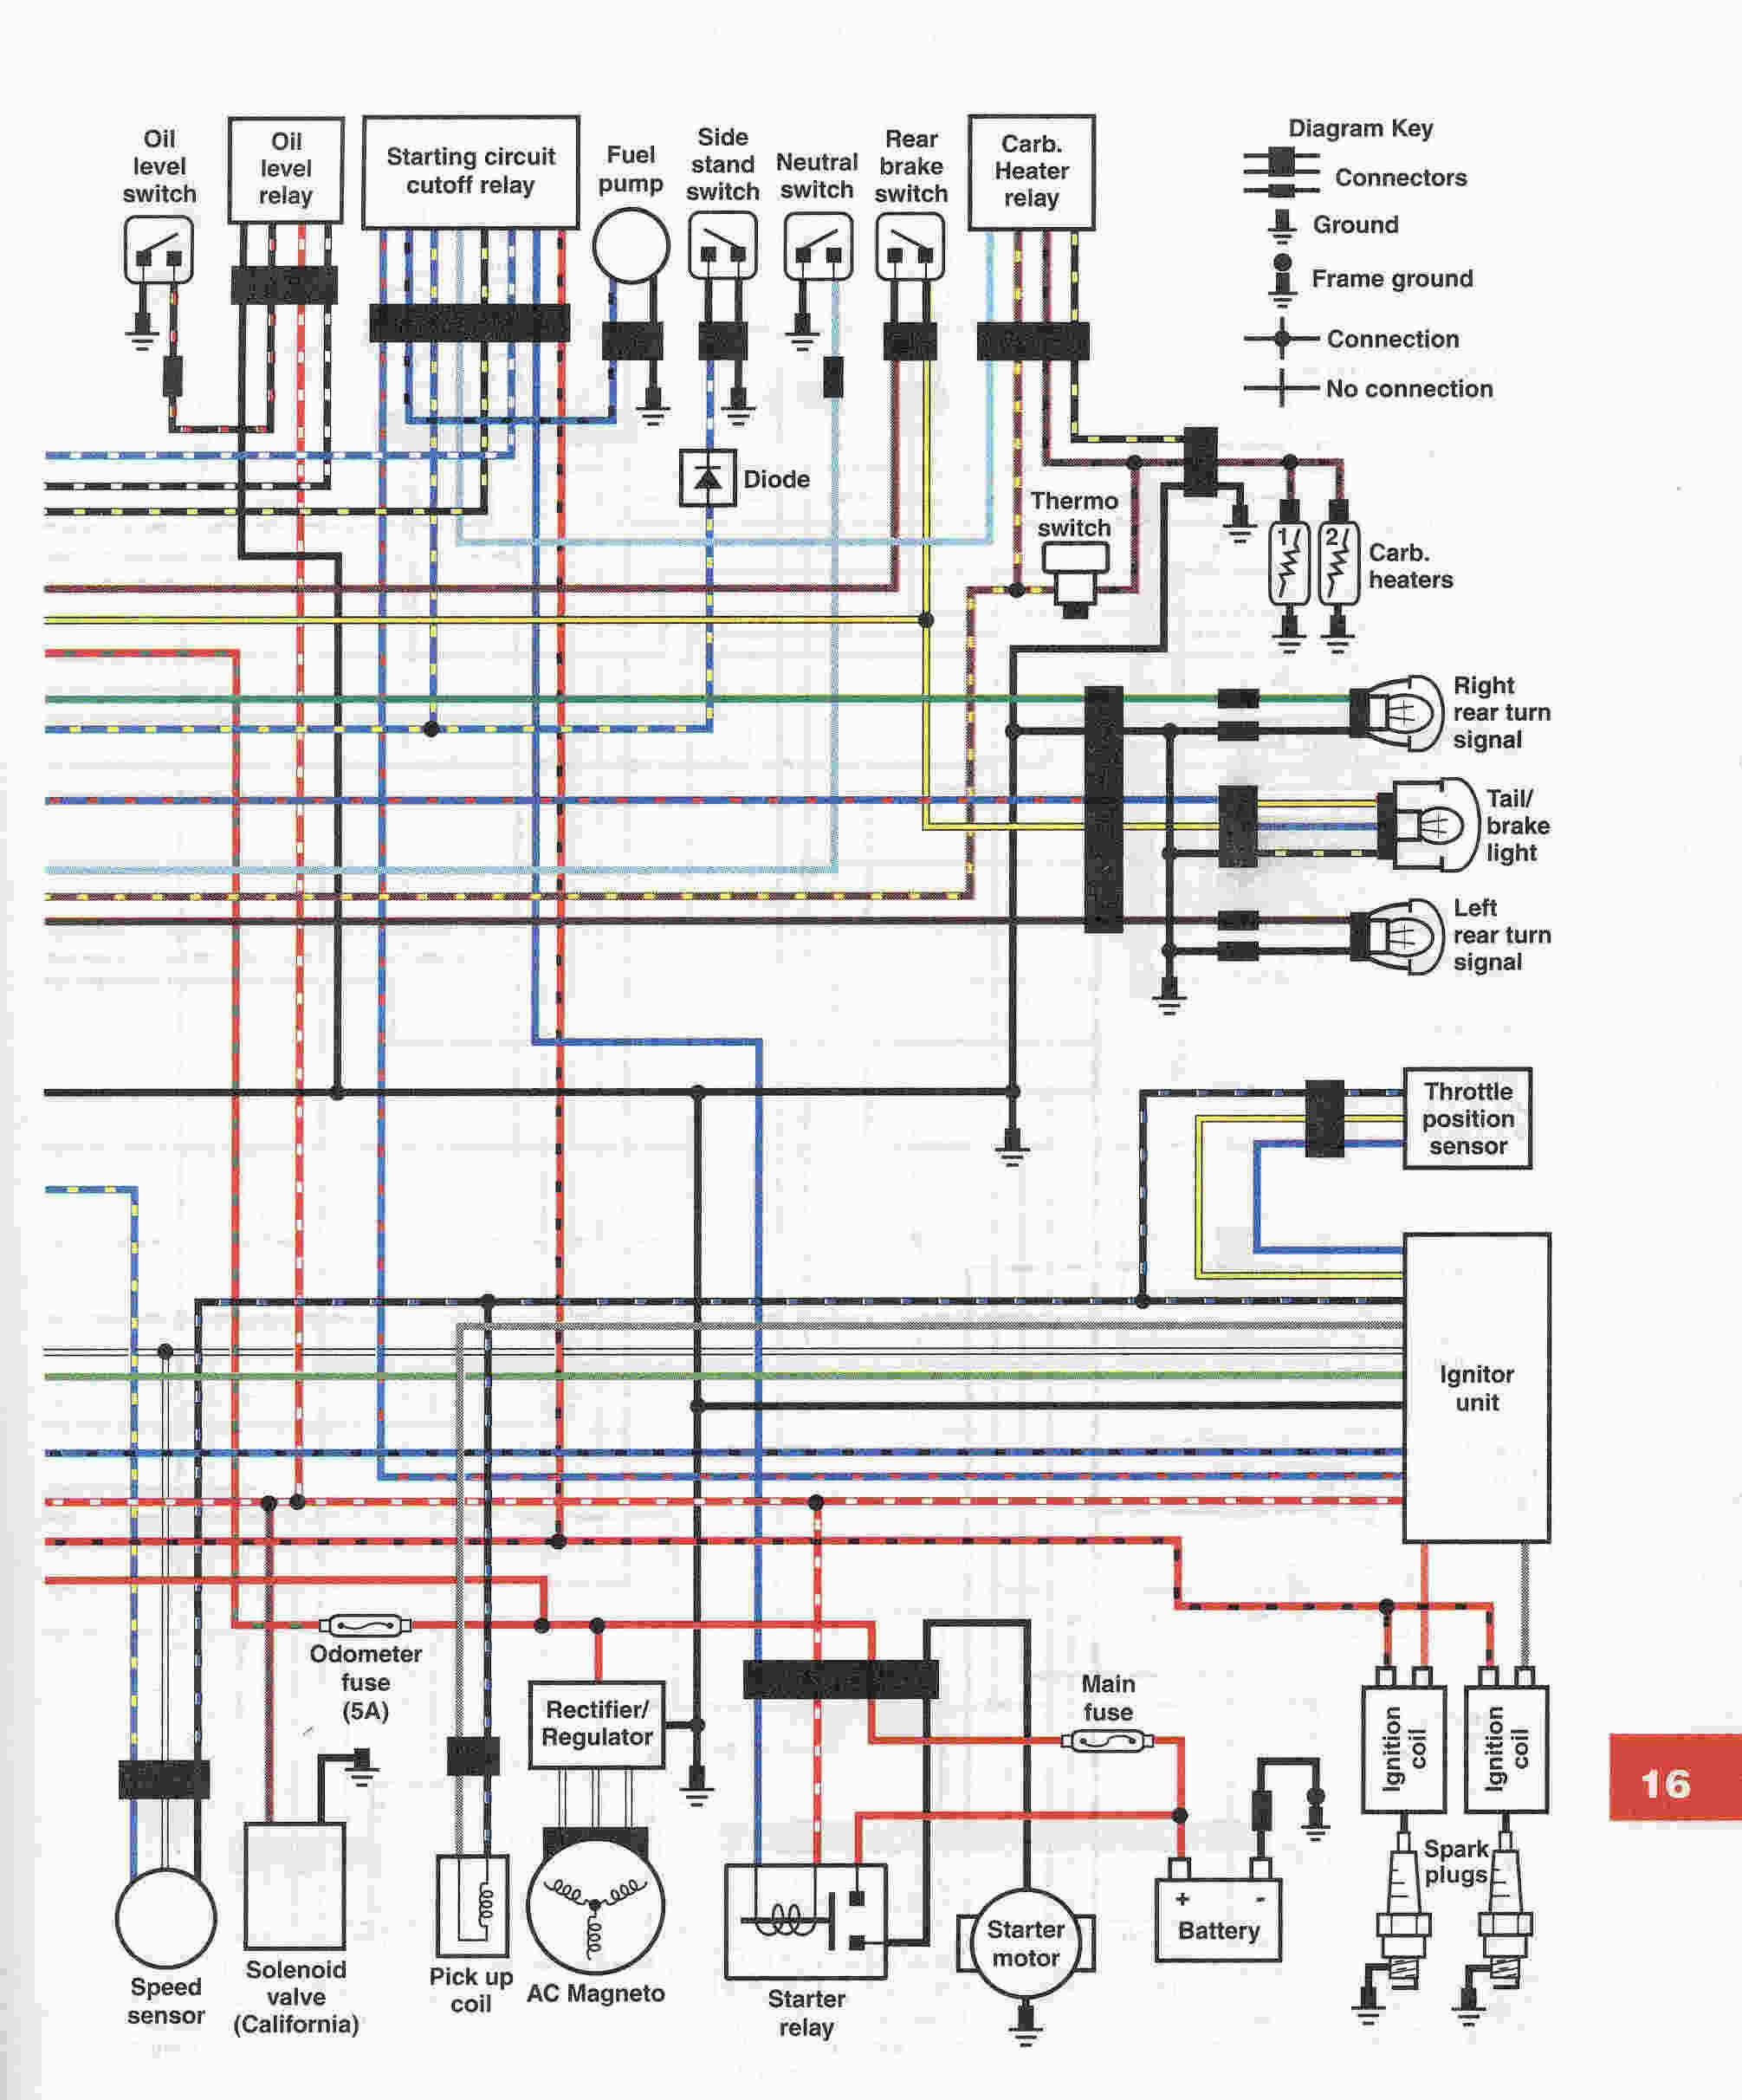 Wiring Diagram For 08 V Star 1300 Custom Project 2001 Toyota Echo Free Download I Have A 2007 Yamaha 650 Classic That Will Not Turn